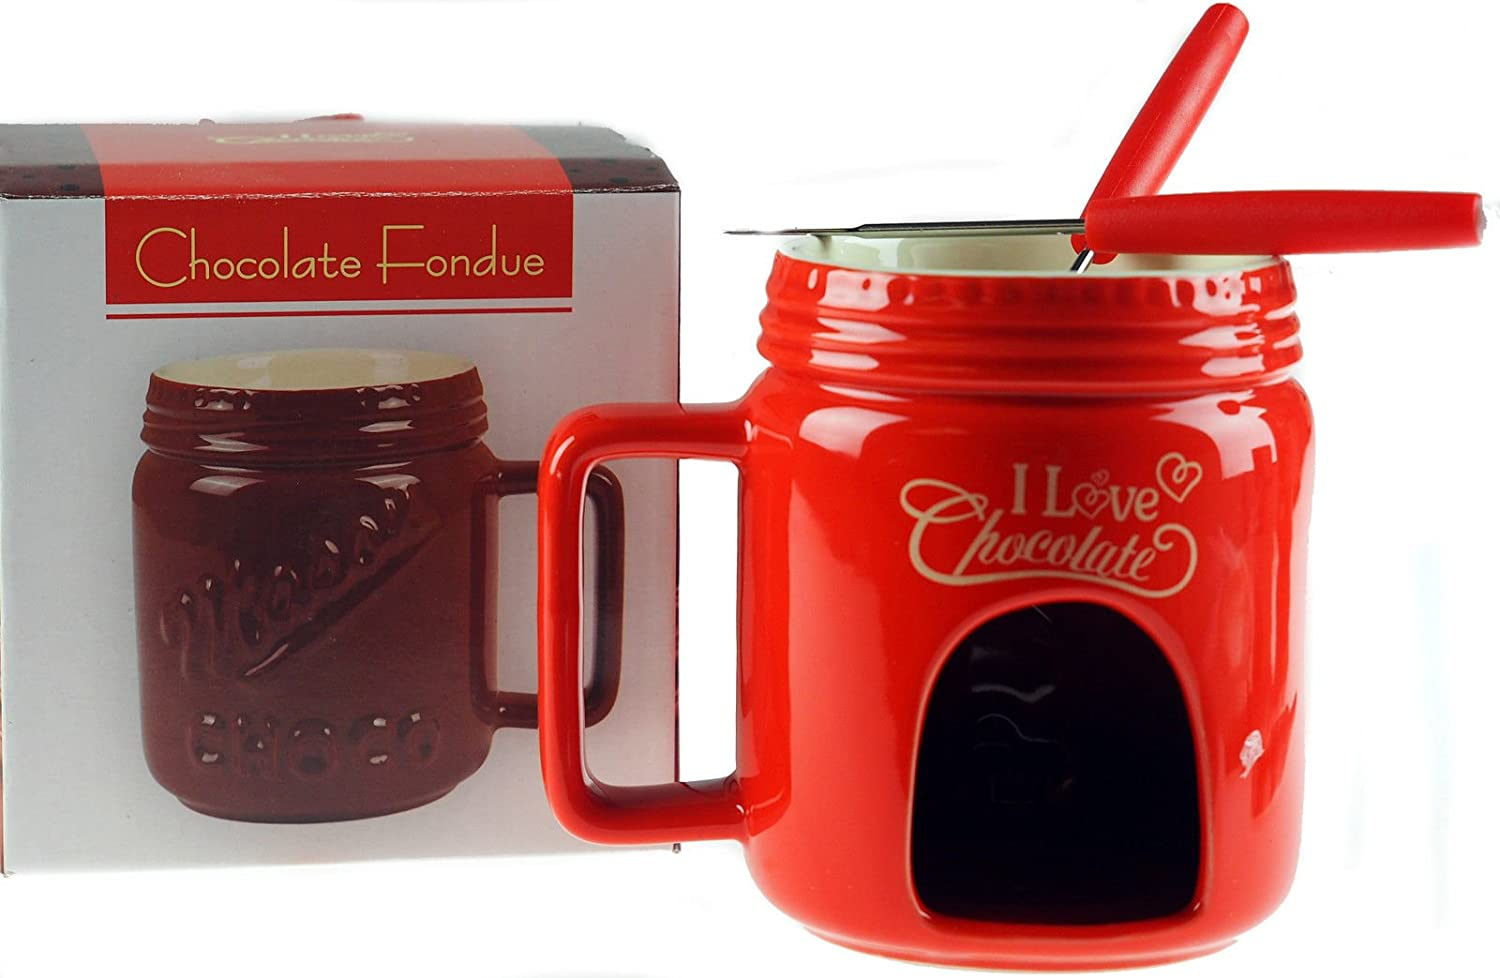 Chocolate Fondue Mug Gift Set - Red Design l&p